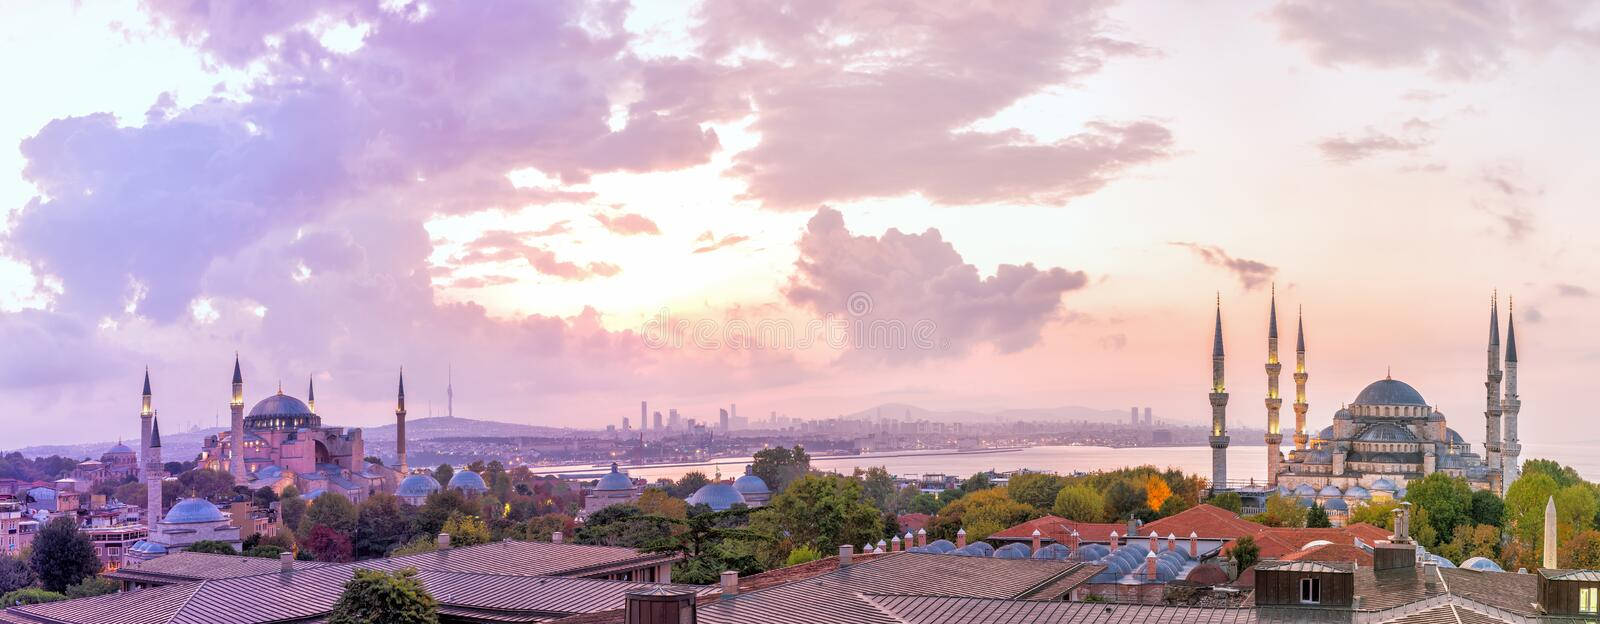 Blue Mosque and Hagia Sophia in the Istanbul panorama stock images